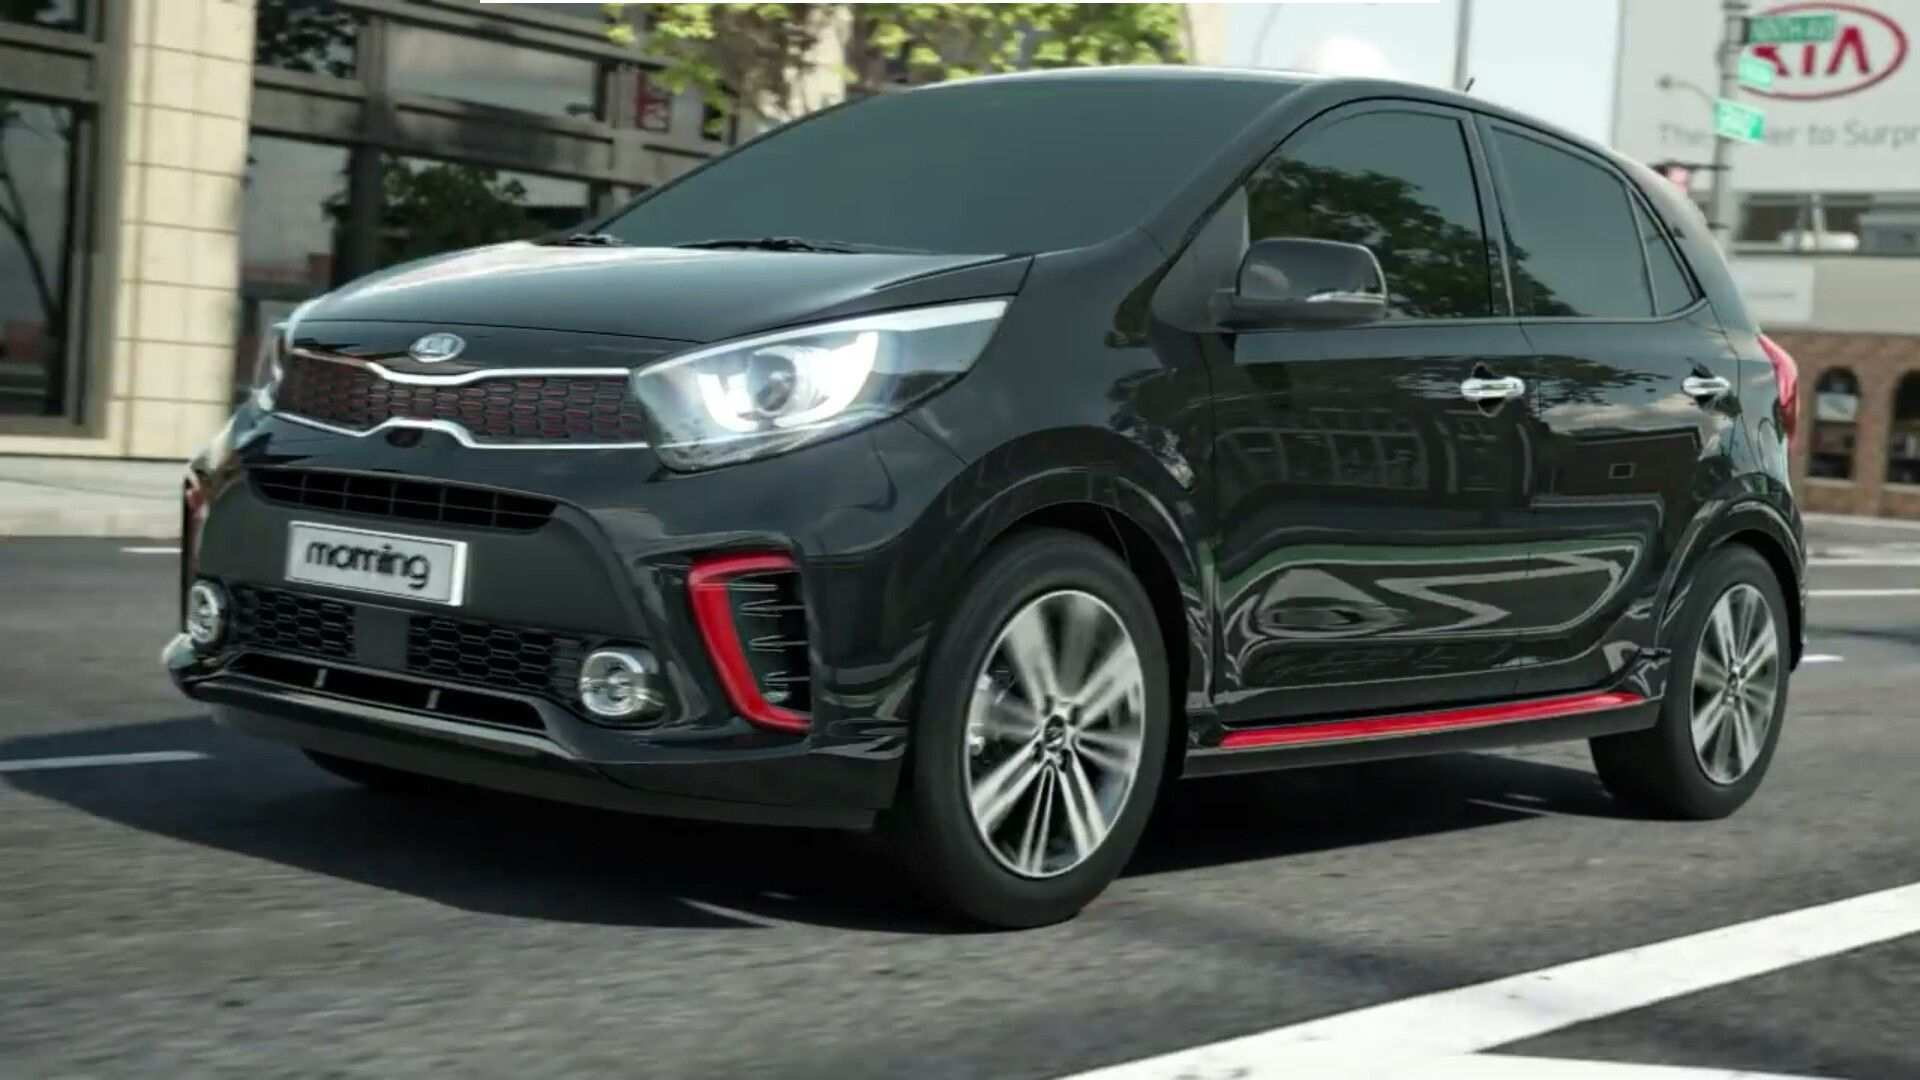 94 Best Review Kia Carens 2020 First Drive for Kia Carens 2020